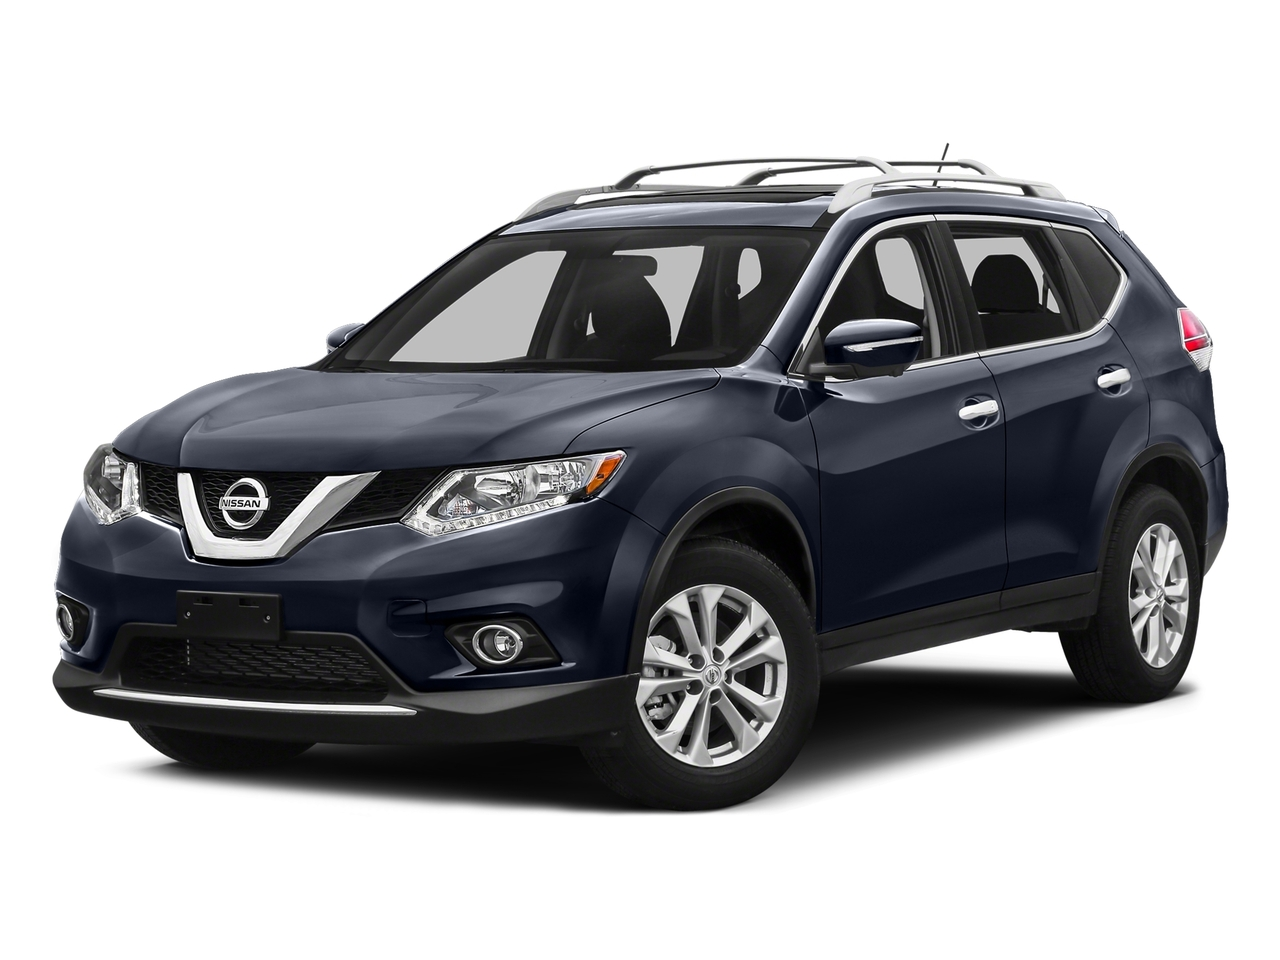 2016 Nissan Rogue FWD 4DR S SUV Slide